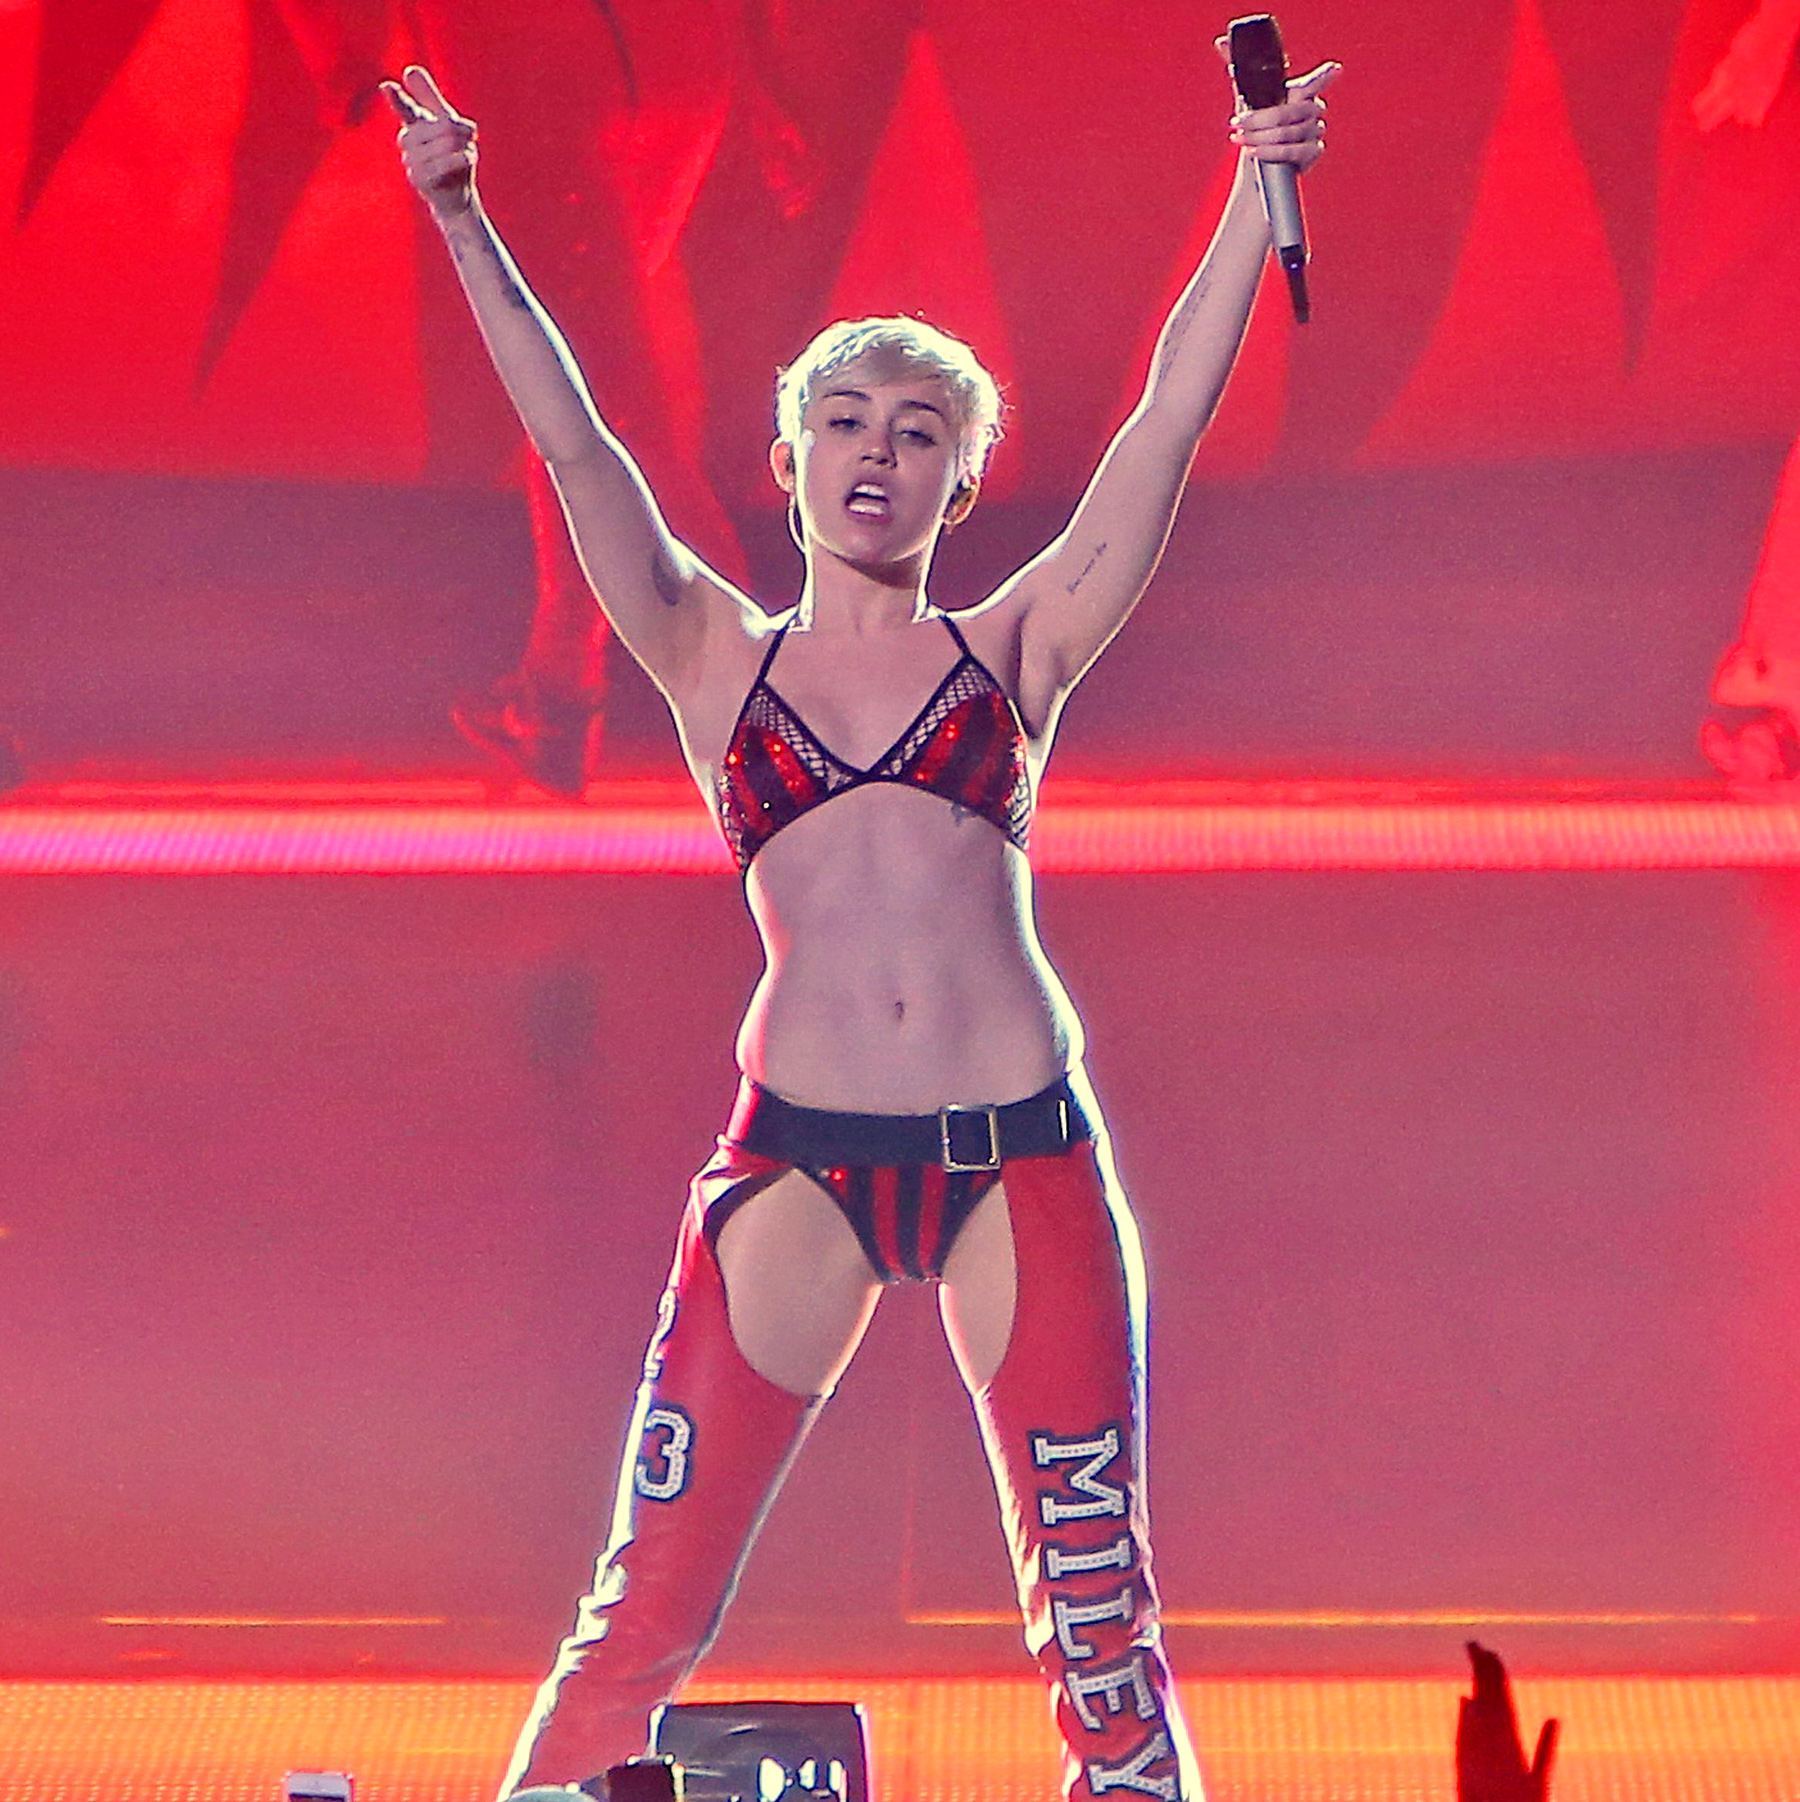 1394496714_inf_miley_cyrus_banger-95-_miley-cyrus-zoom